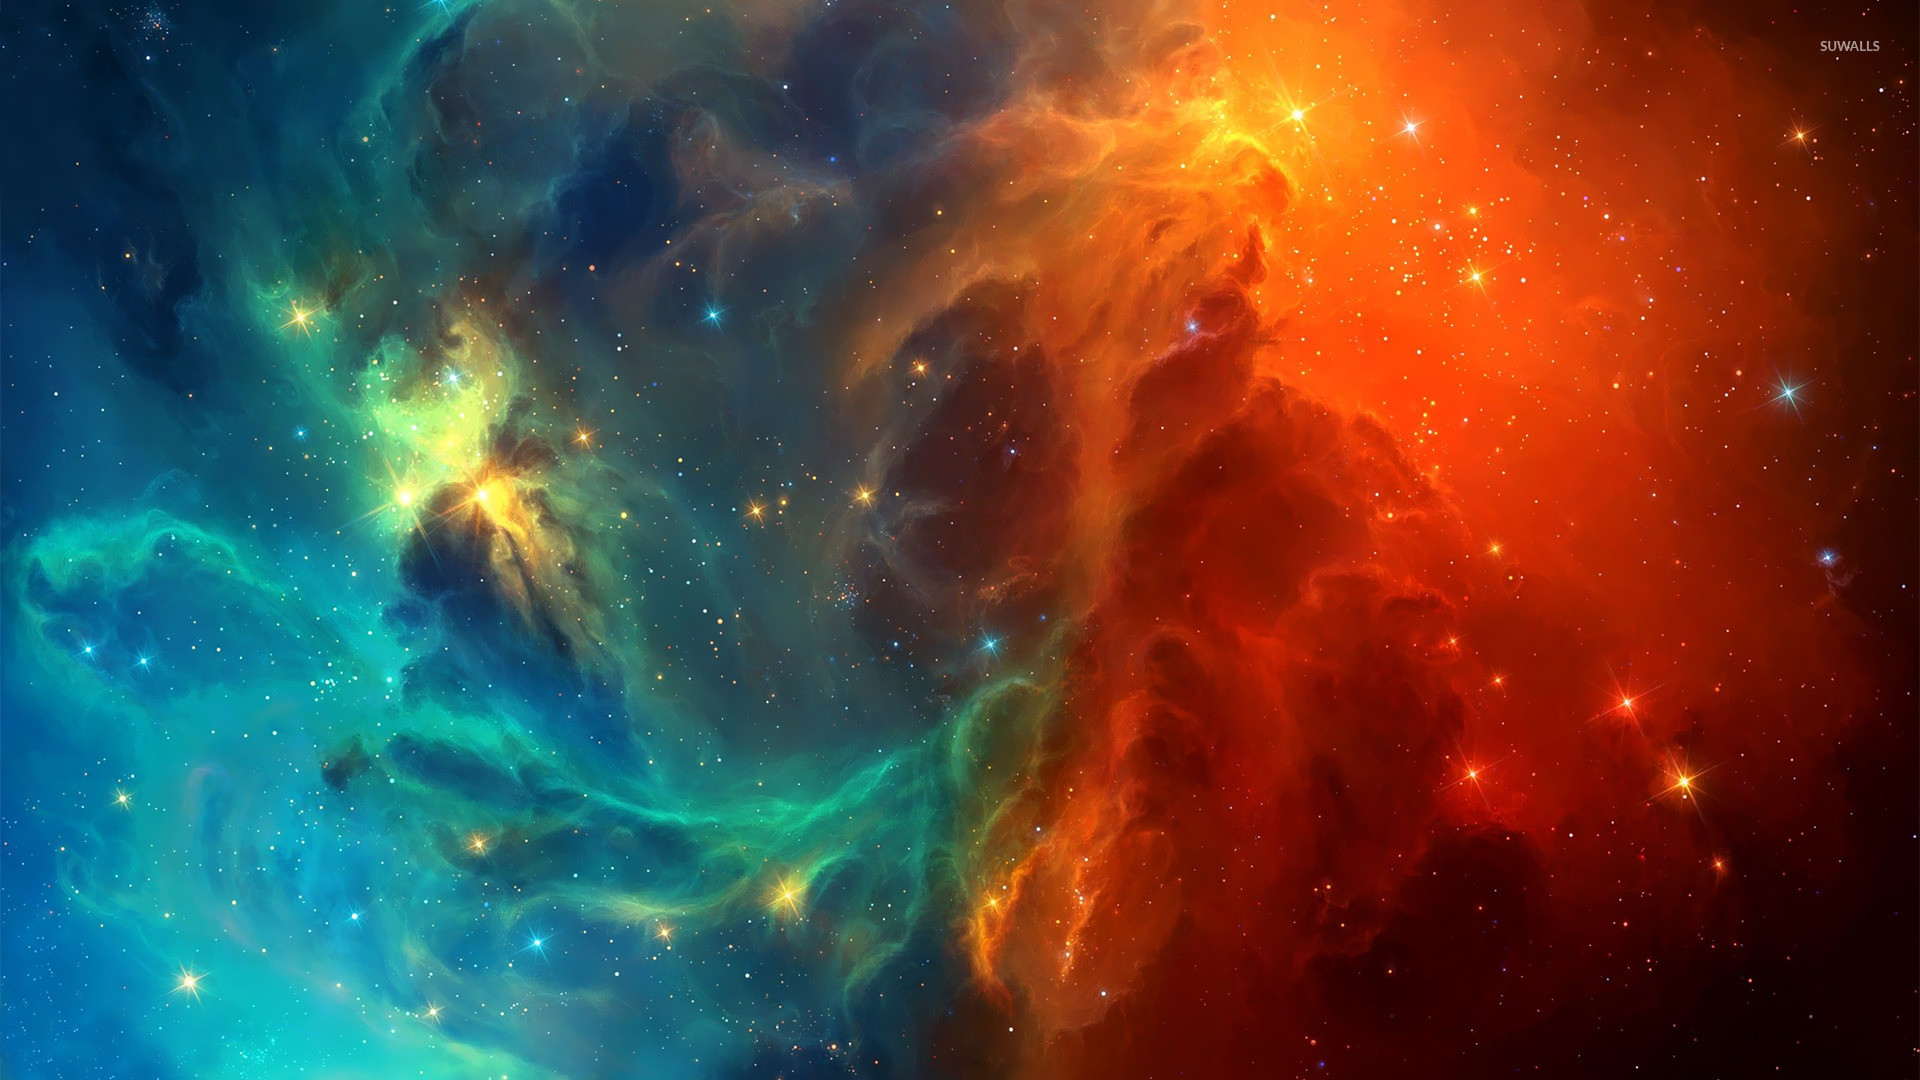 1920x1080 Outer space colorful stars nebulae wallpaper x